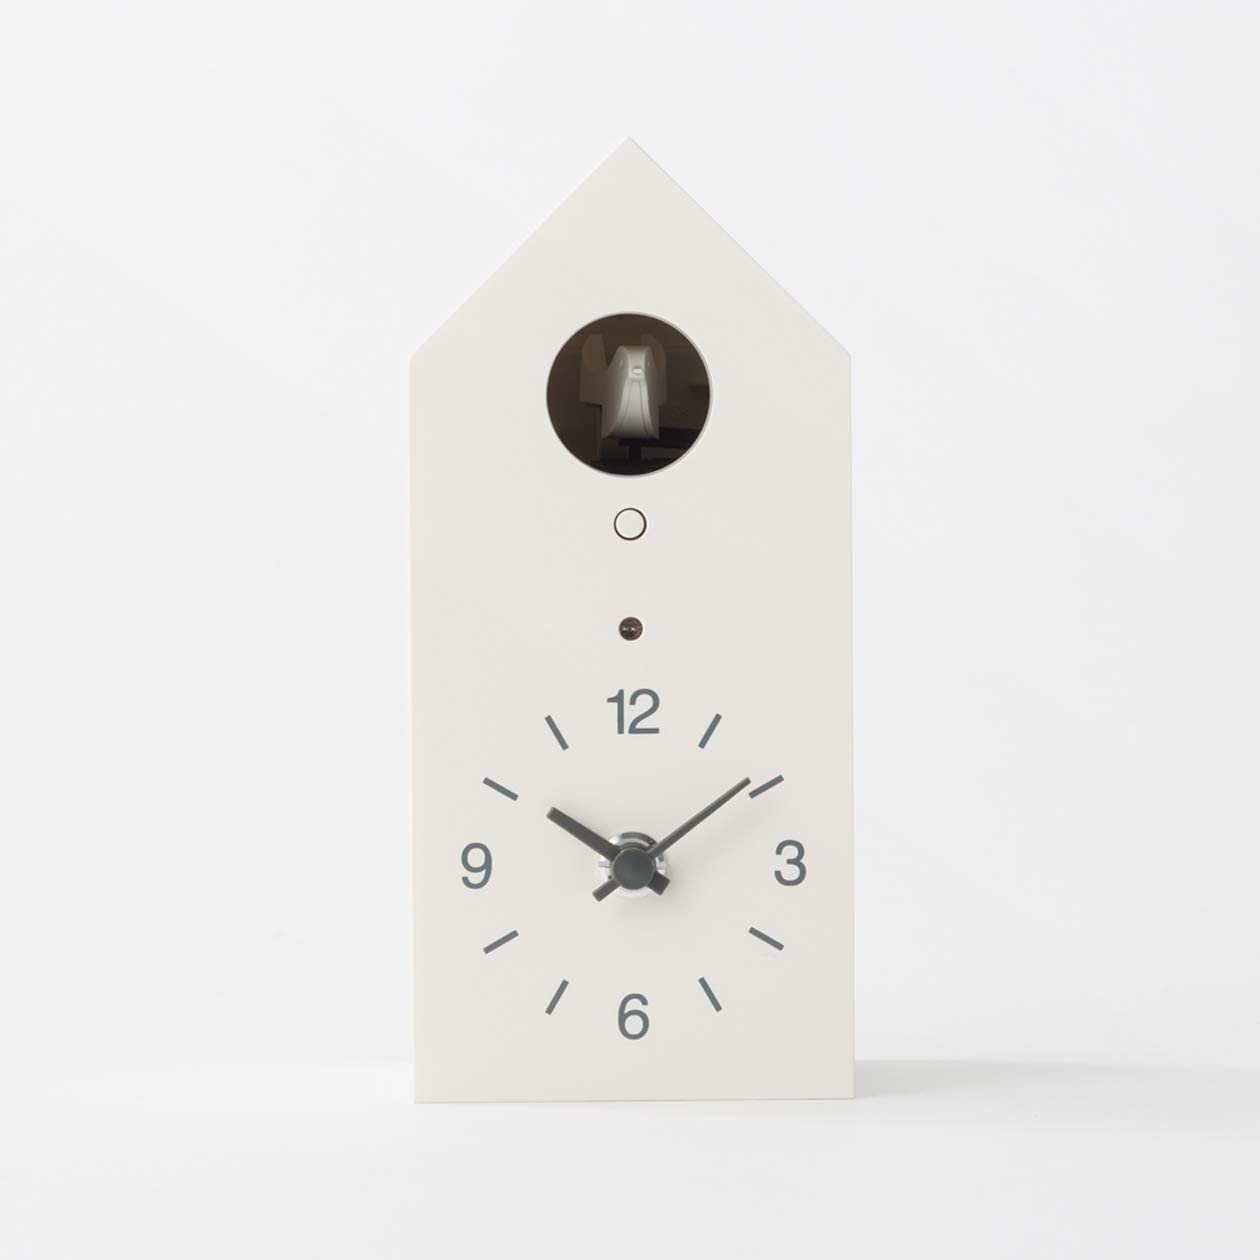 MoMa MUJI White-hanging clocks cuckoo clocks NEW